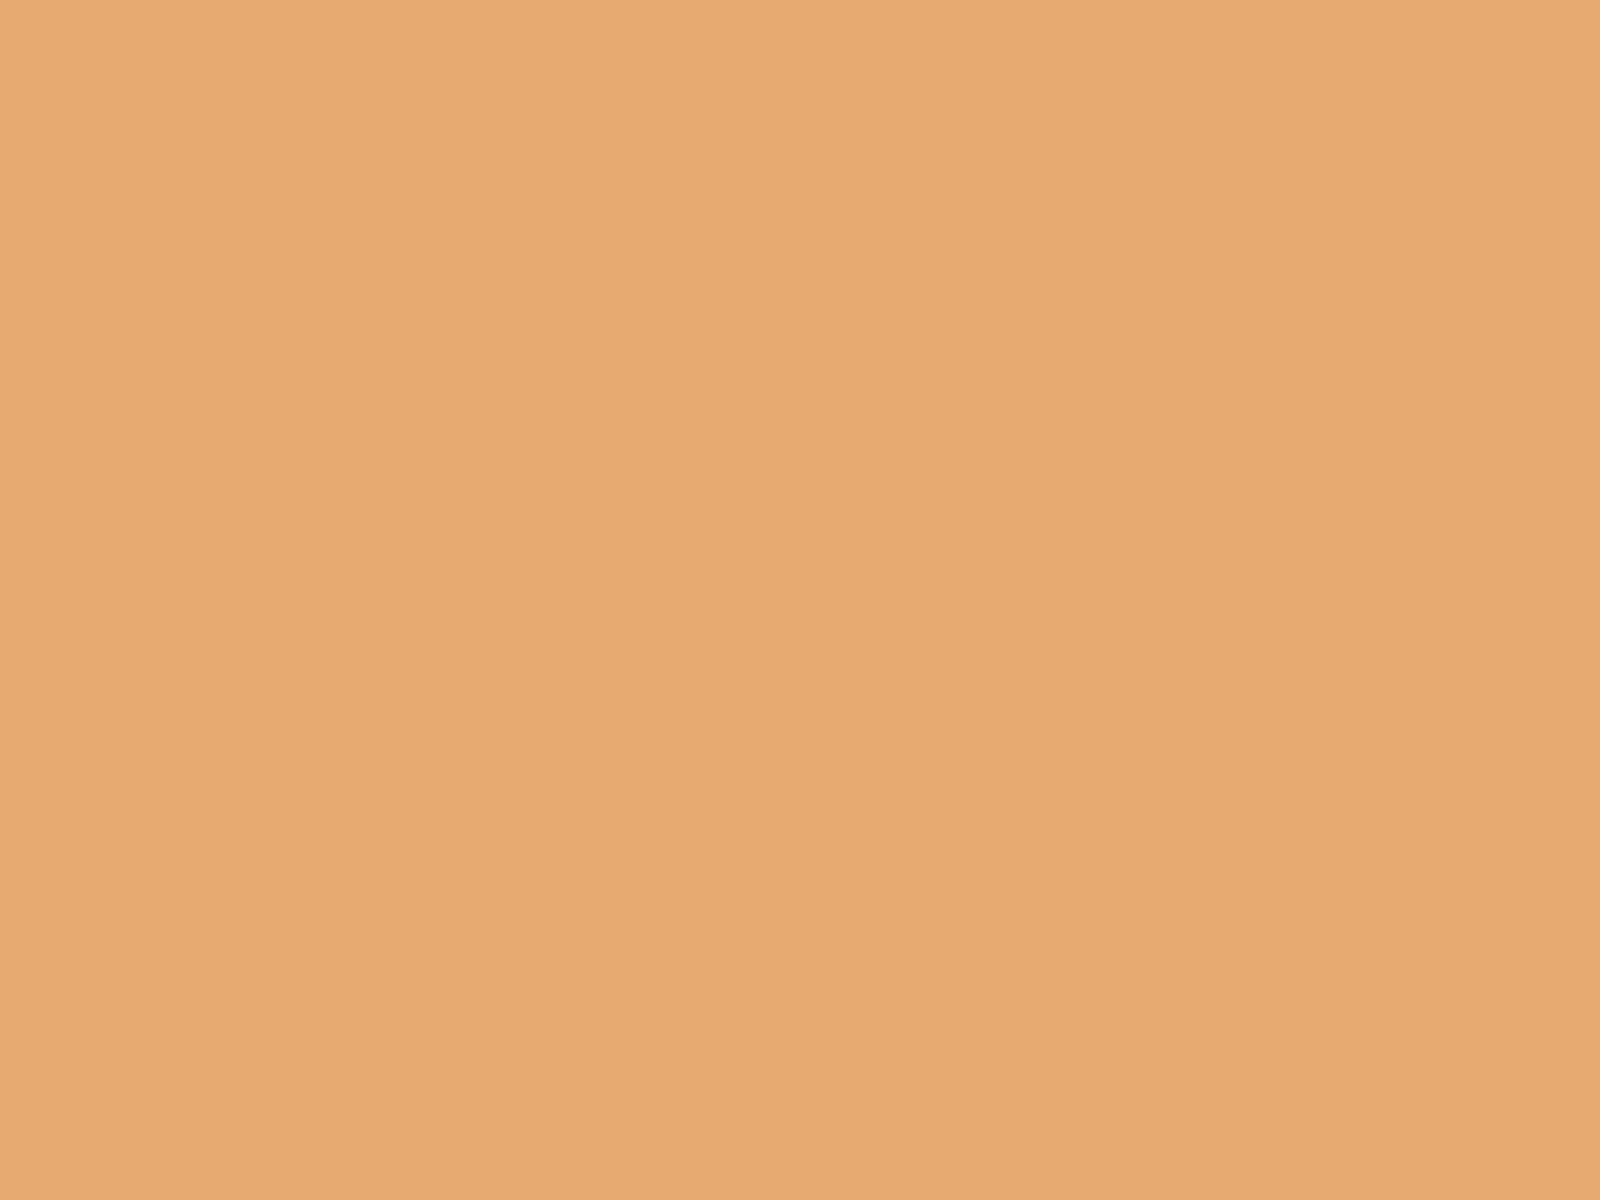 1600x1200 Fawn Solid Color Background